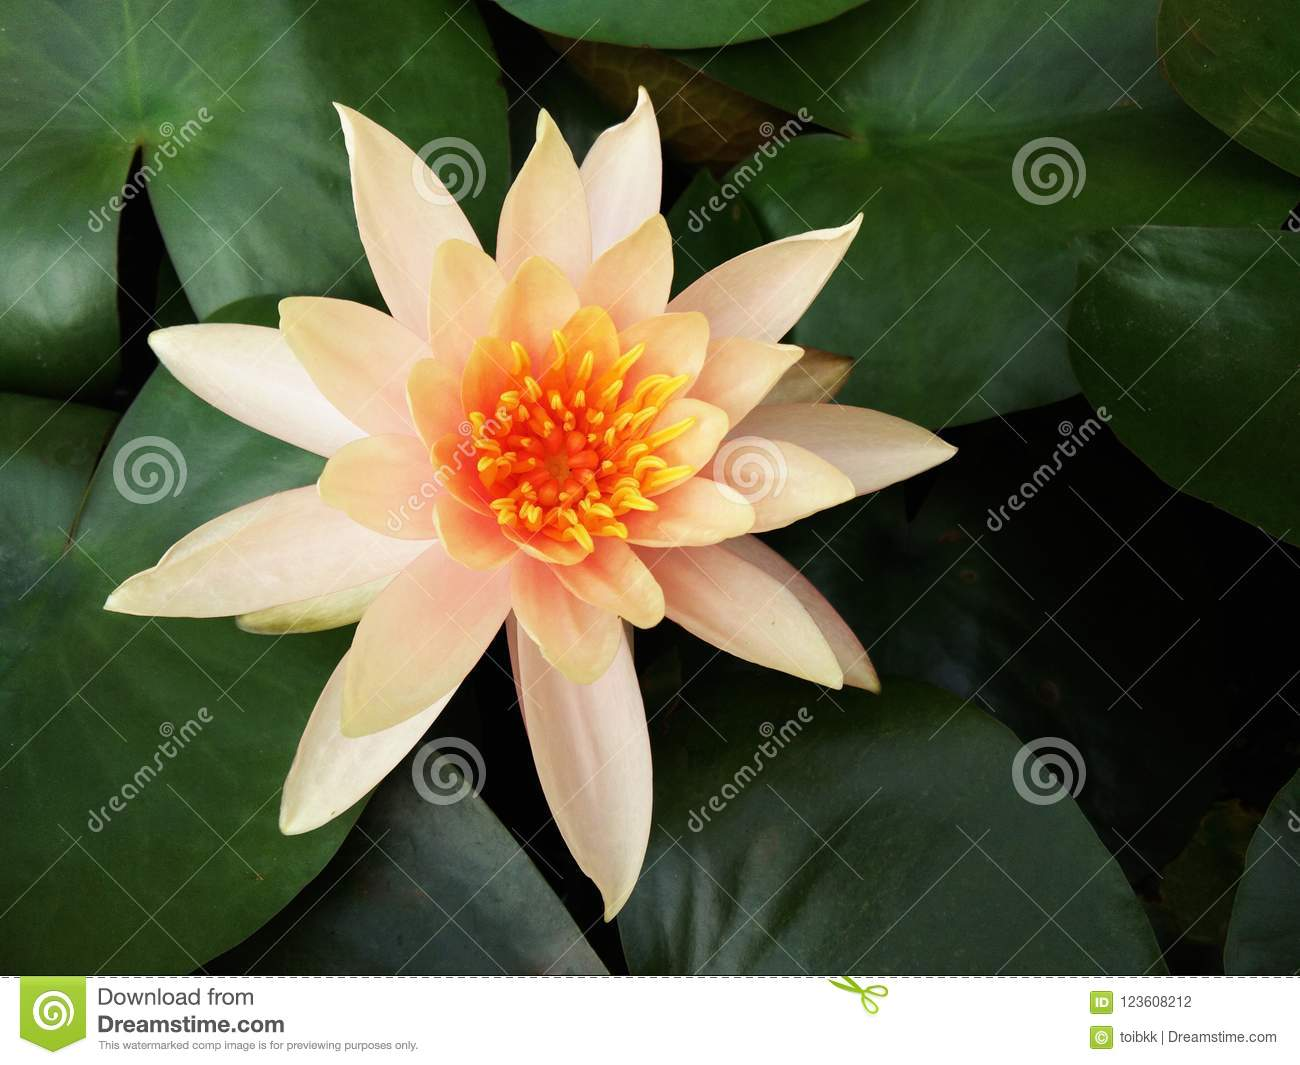 Blossom orange lotus flower or water lily and blurred green leaves download blossom orange lotus flower or water lily and blurred green leaves background stock photo izmirmasajfo